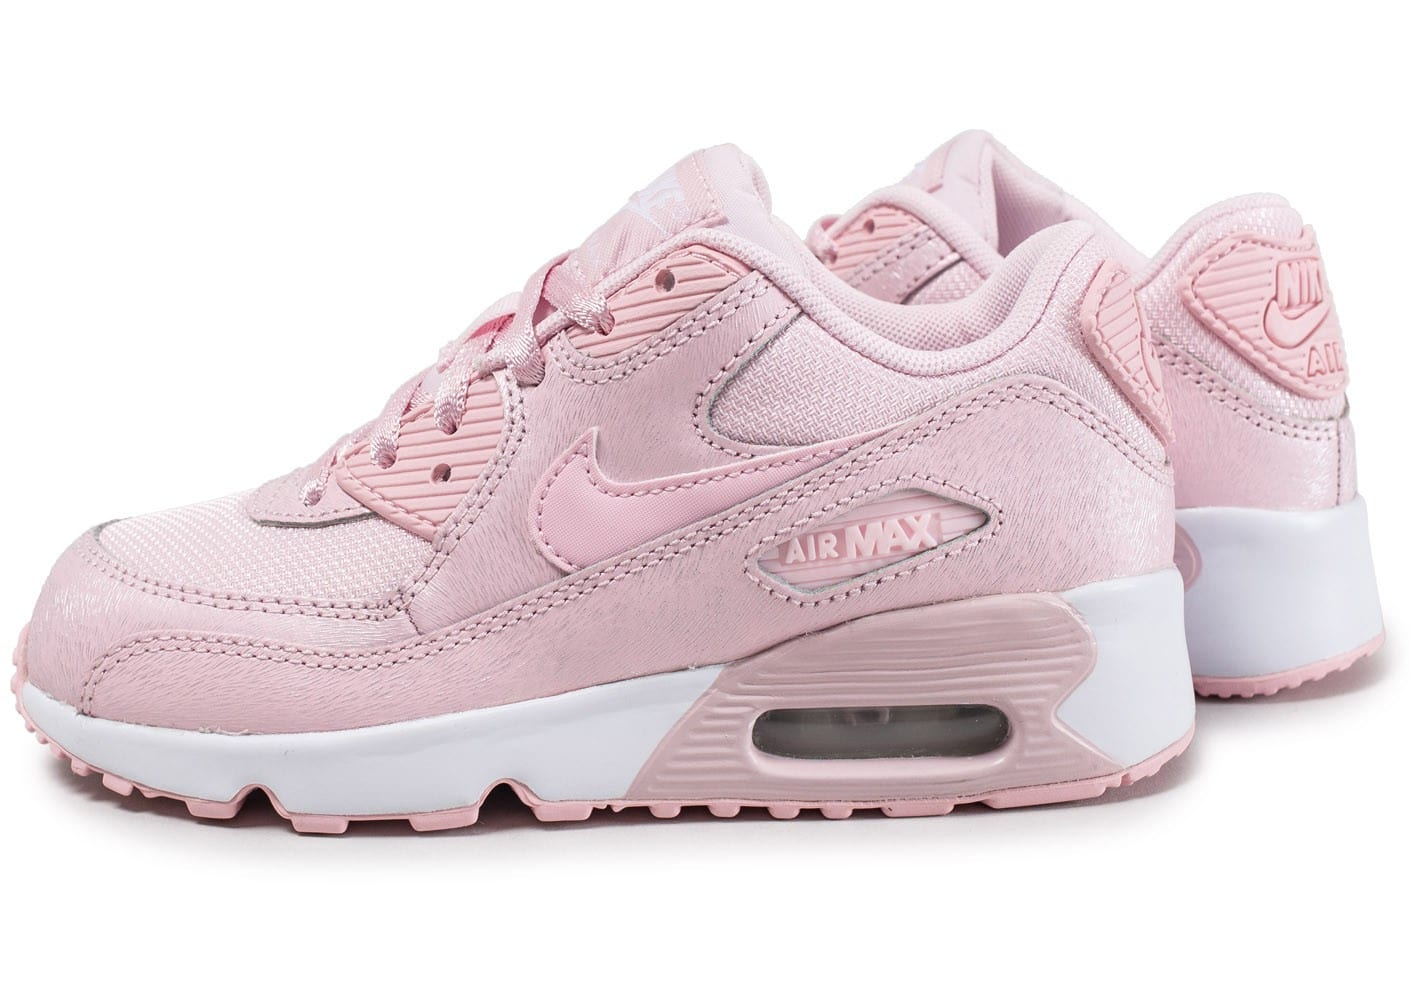 nike air max 90 se enfant hyper pink chaussures enfant chausport. Black Bedroom Furniture Sets. Home Design Ideas